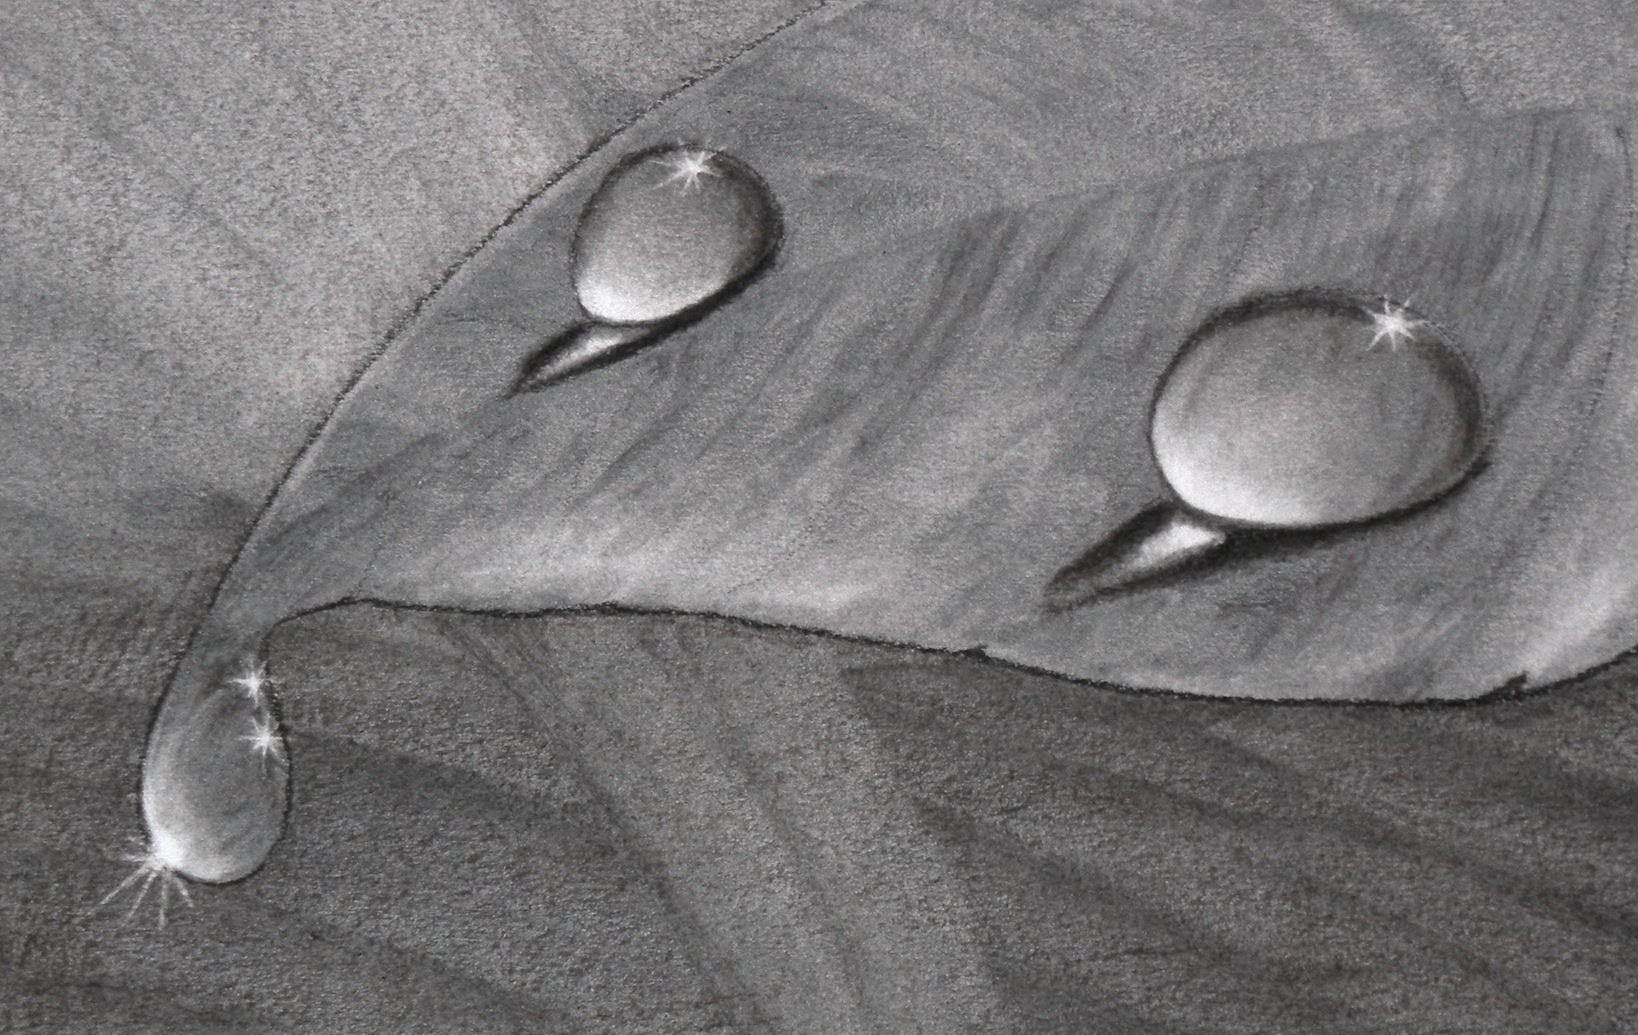 1638x1035 water drop pencil sketch water drop pencil sketch how to draw a water drop